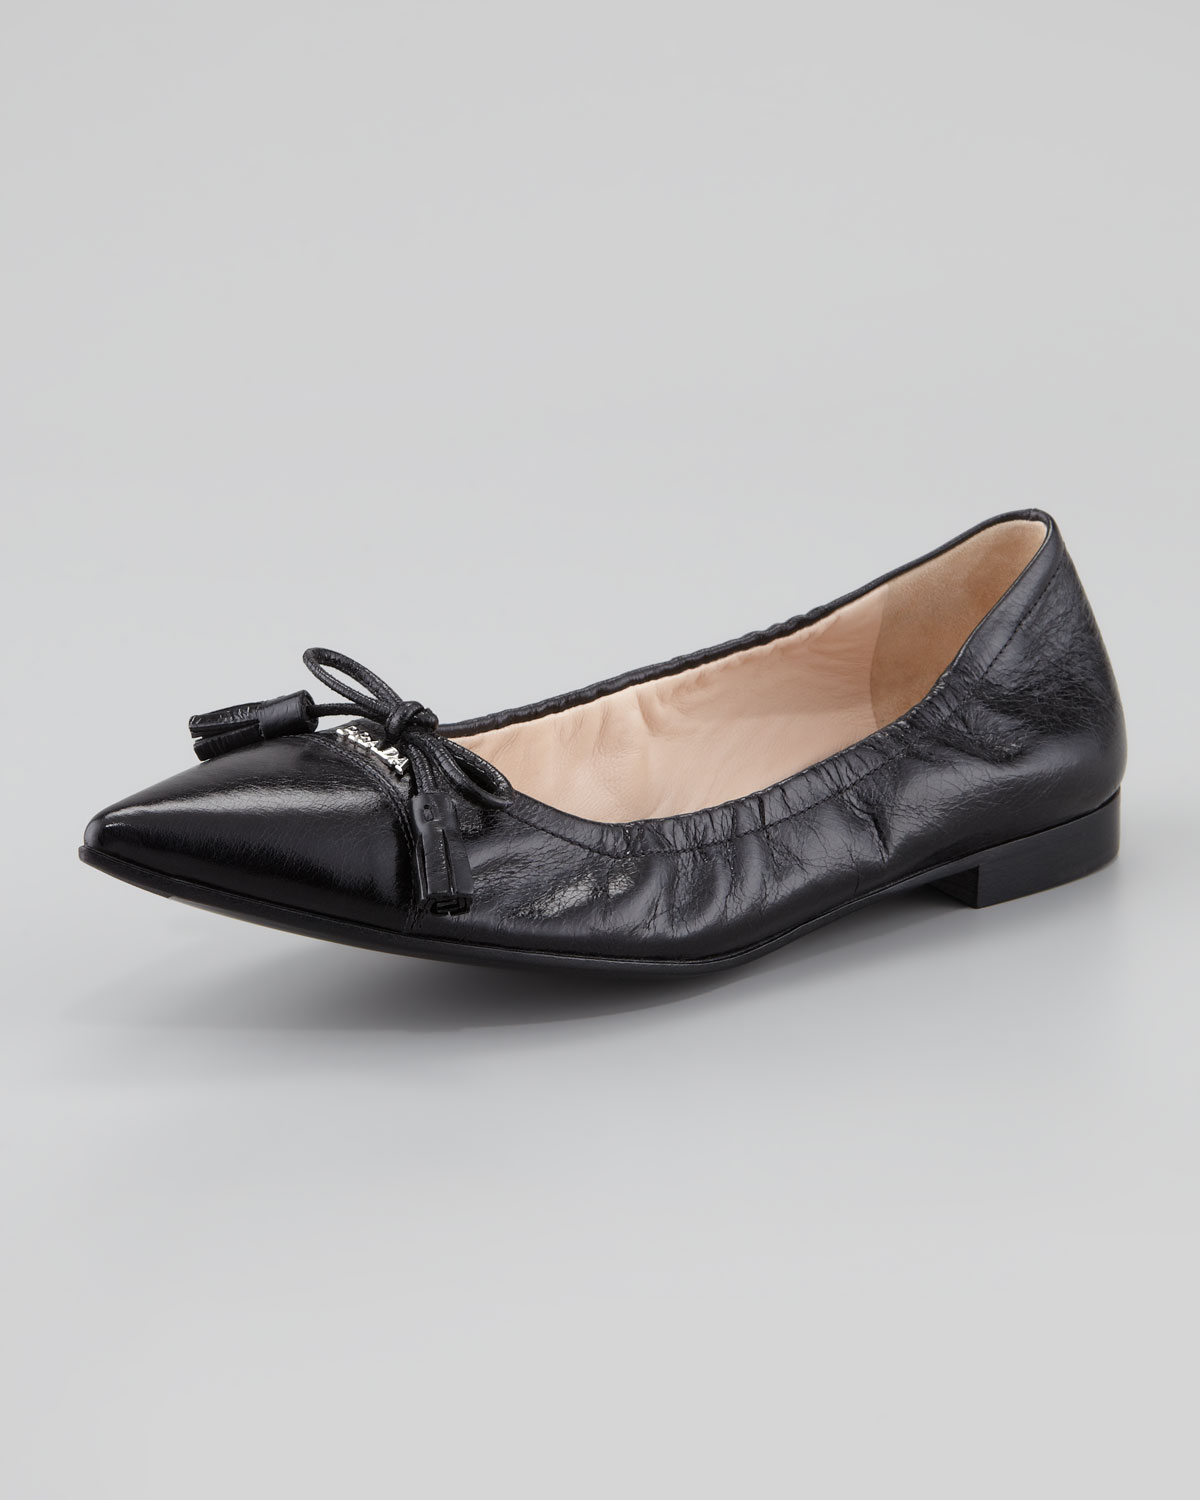 5a63d512e7 Prada Leather Tassel Pointedtoe Ballet Flat in Black - Lyst